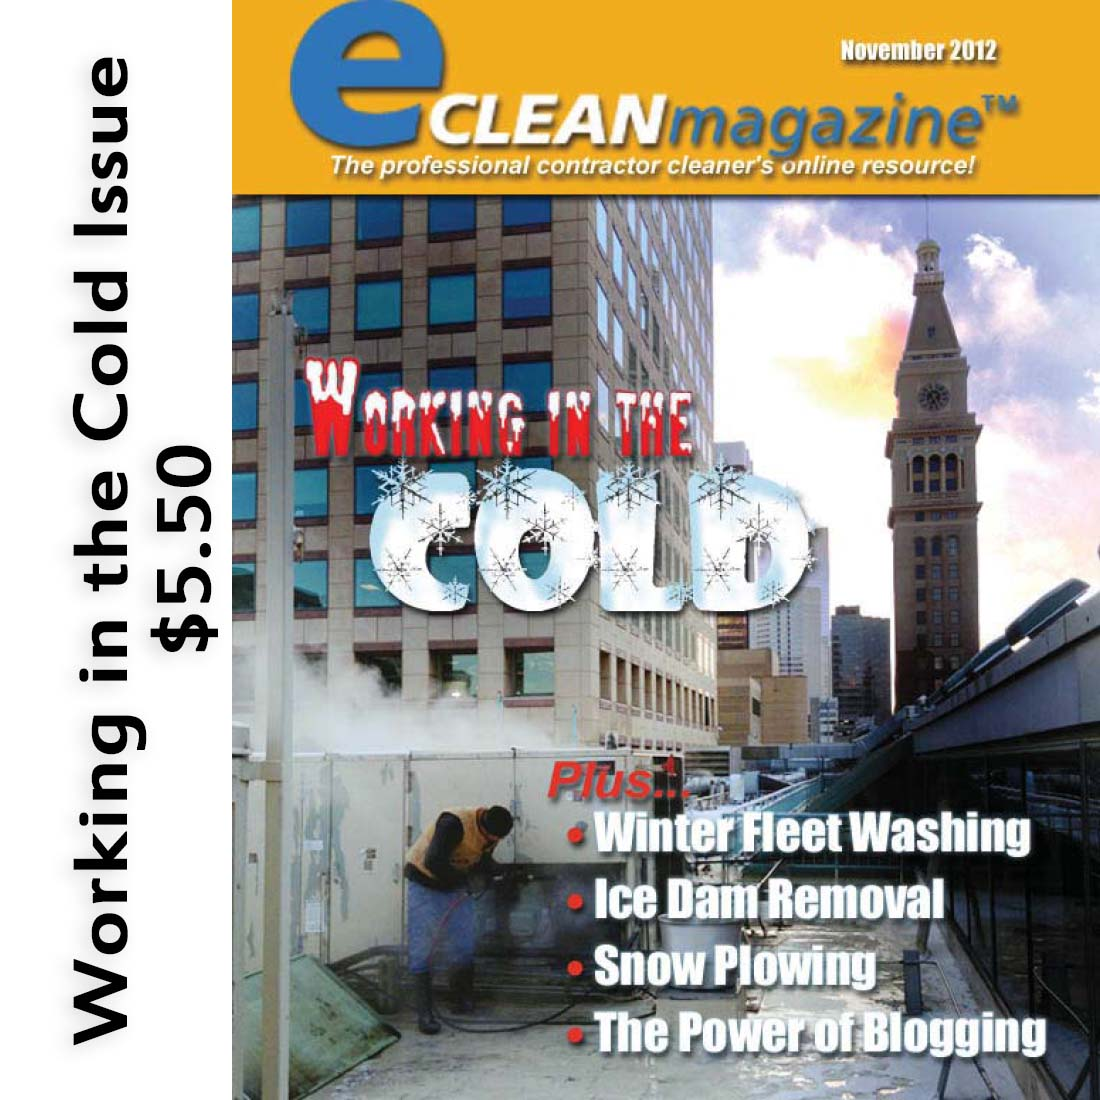 Products | eClean Magazine